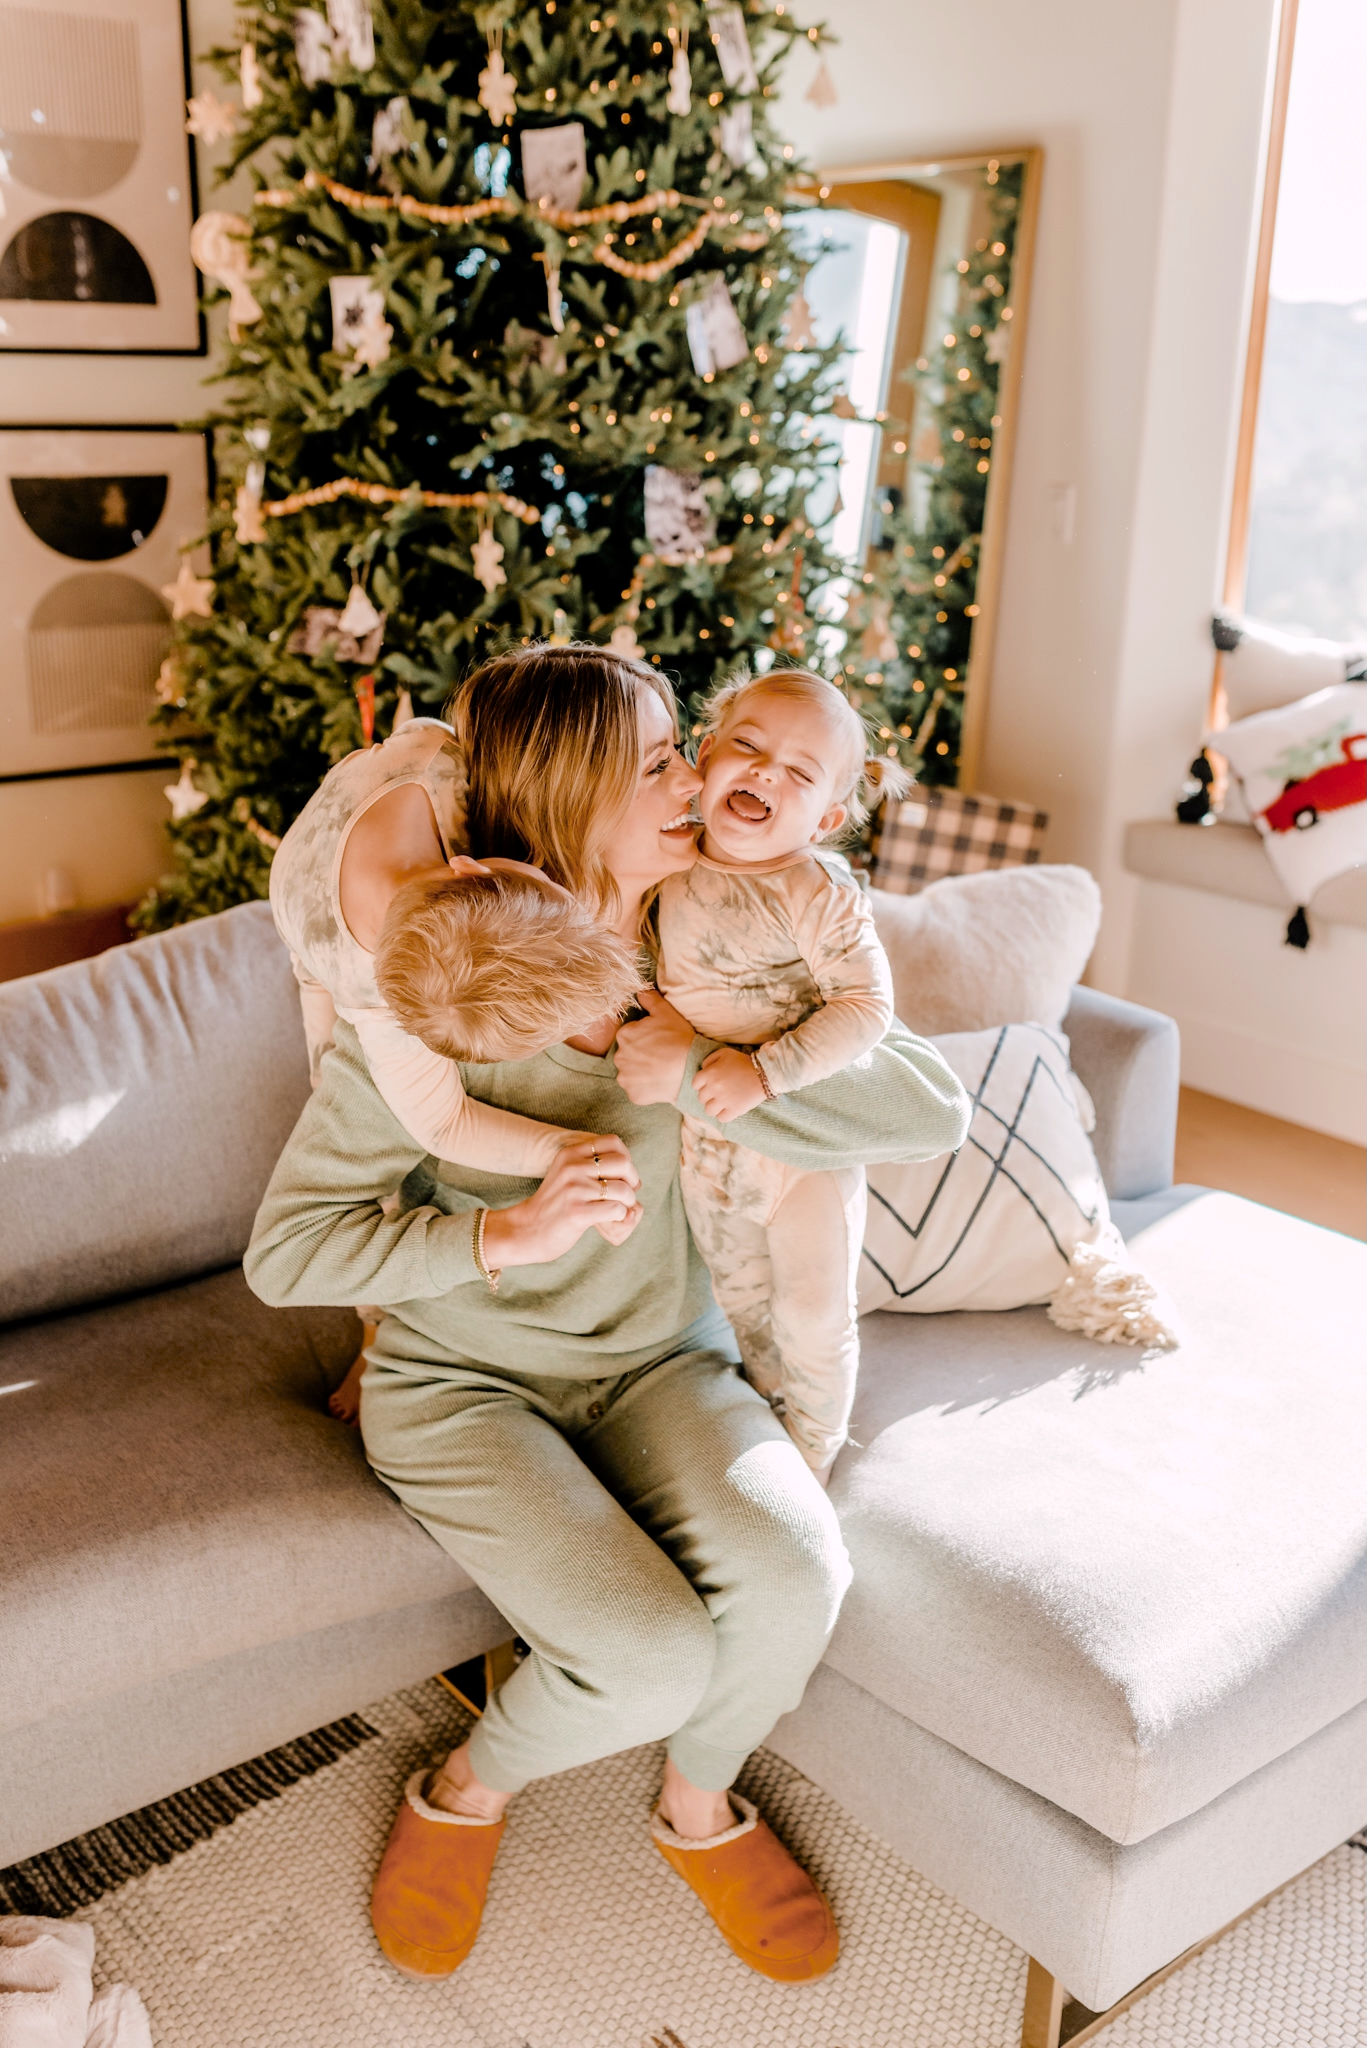 walmart+ |Walmart Membership by popular San Diego lifestyle blog, Navy Grace: image of a woman and her two small children wearing pajamas and sitting together on their grey sectional couch in front of their Christmas tree.